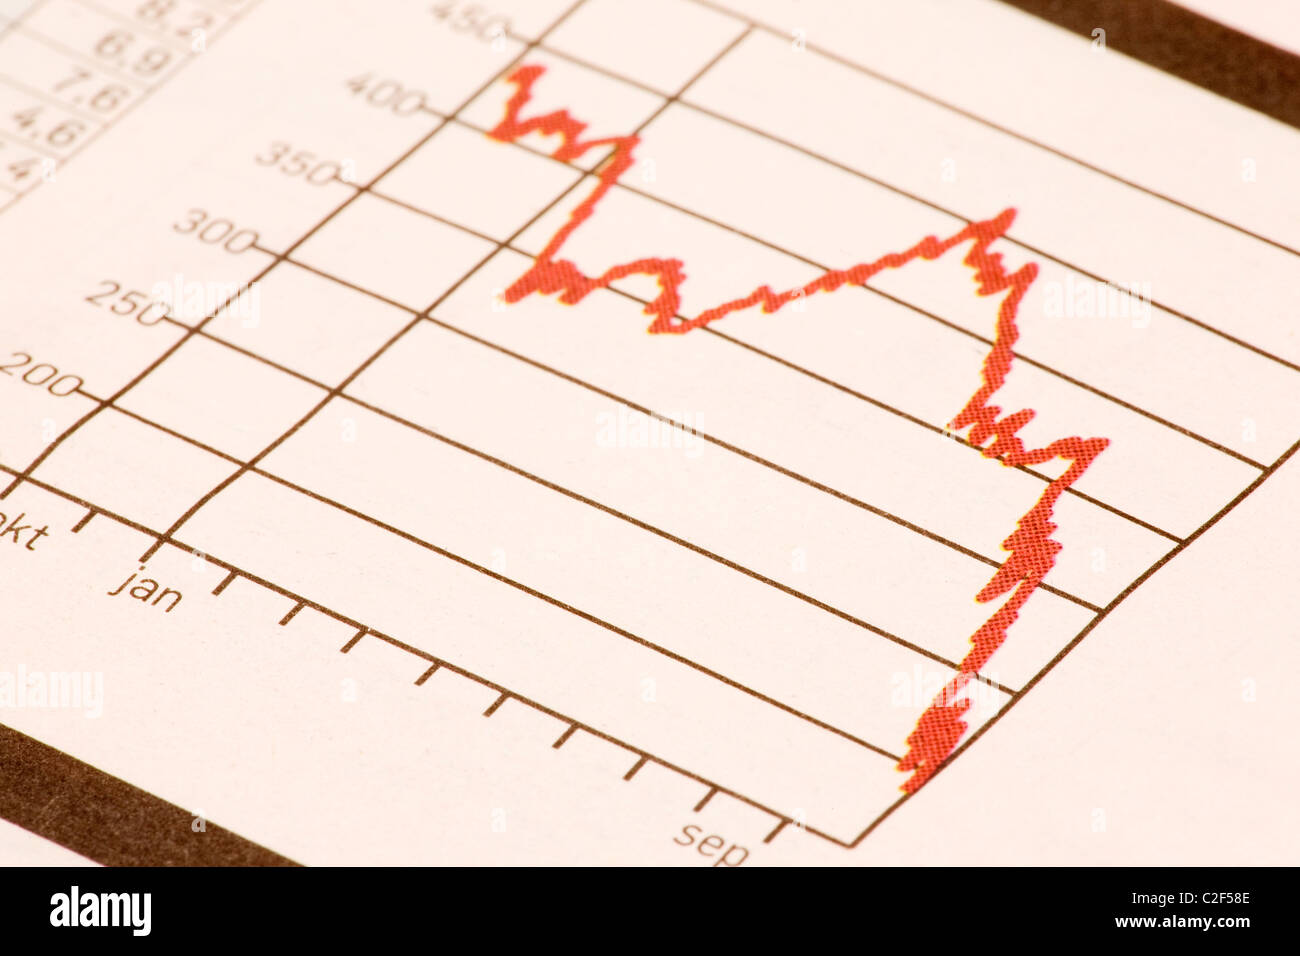 A downward stock market trend - Stock Image